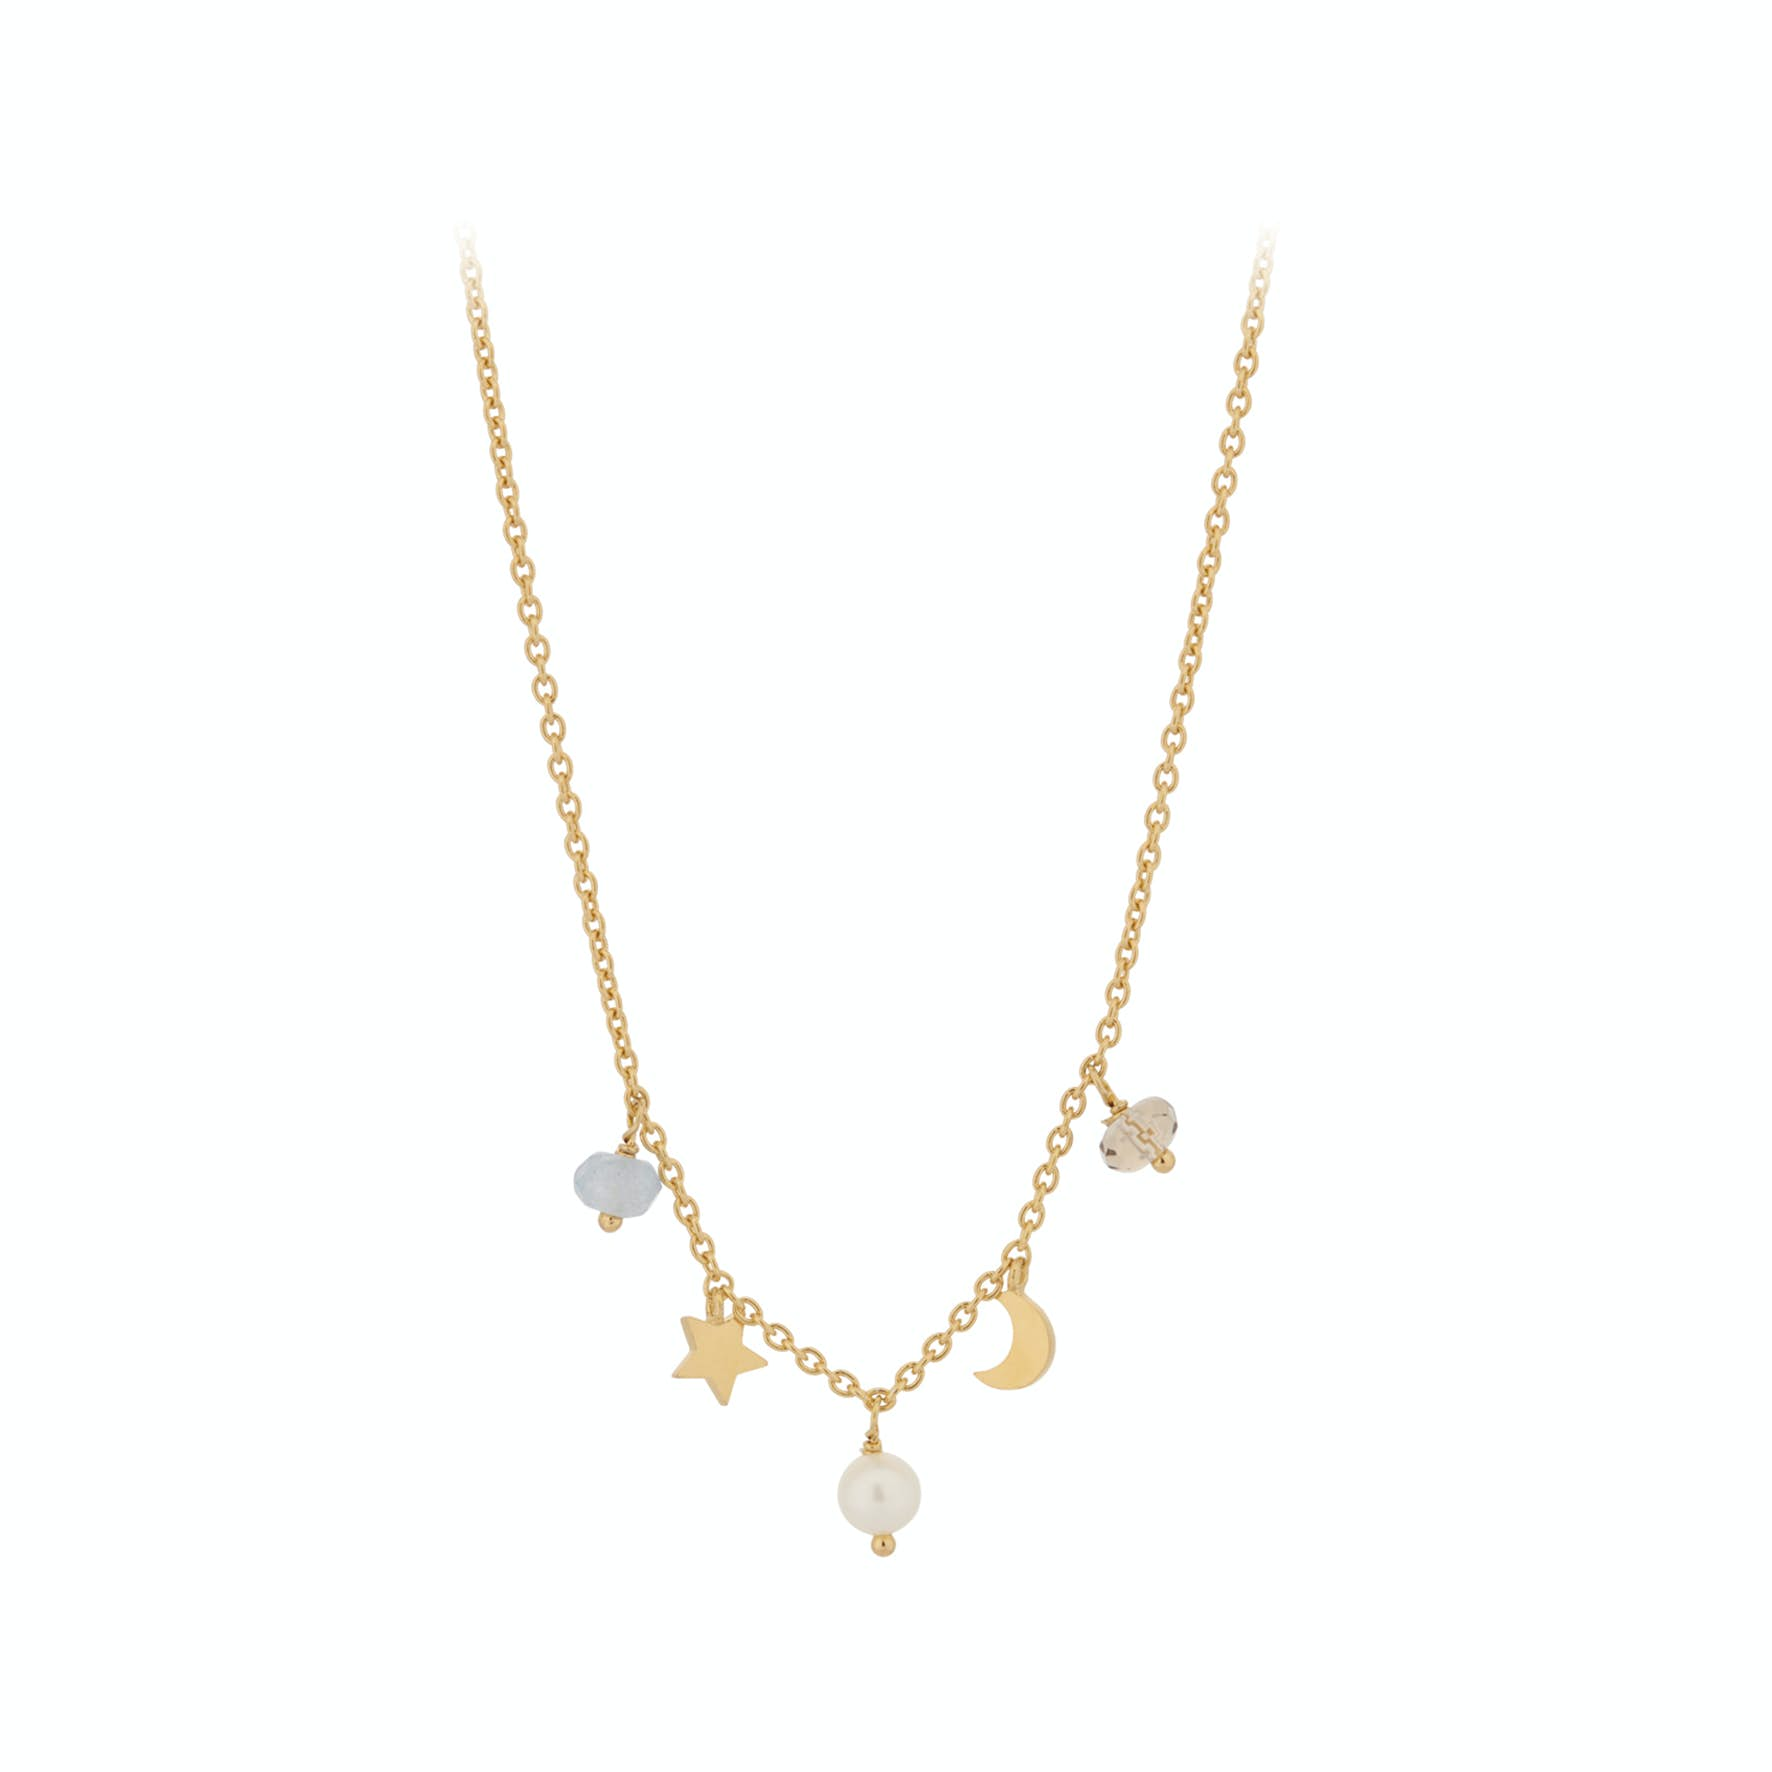 Dream Necklace from Pernille Corydon in Goldplated-Silver Sterling 925